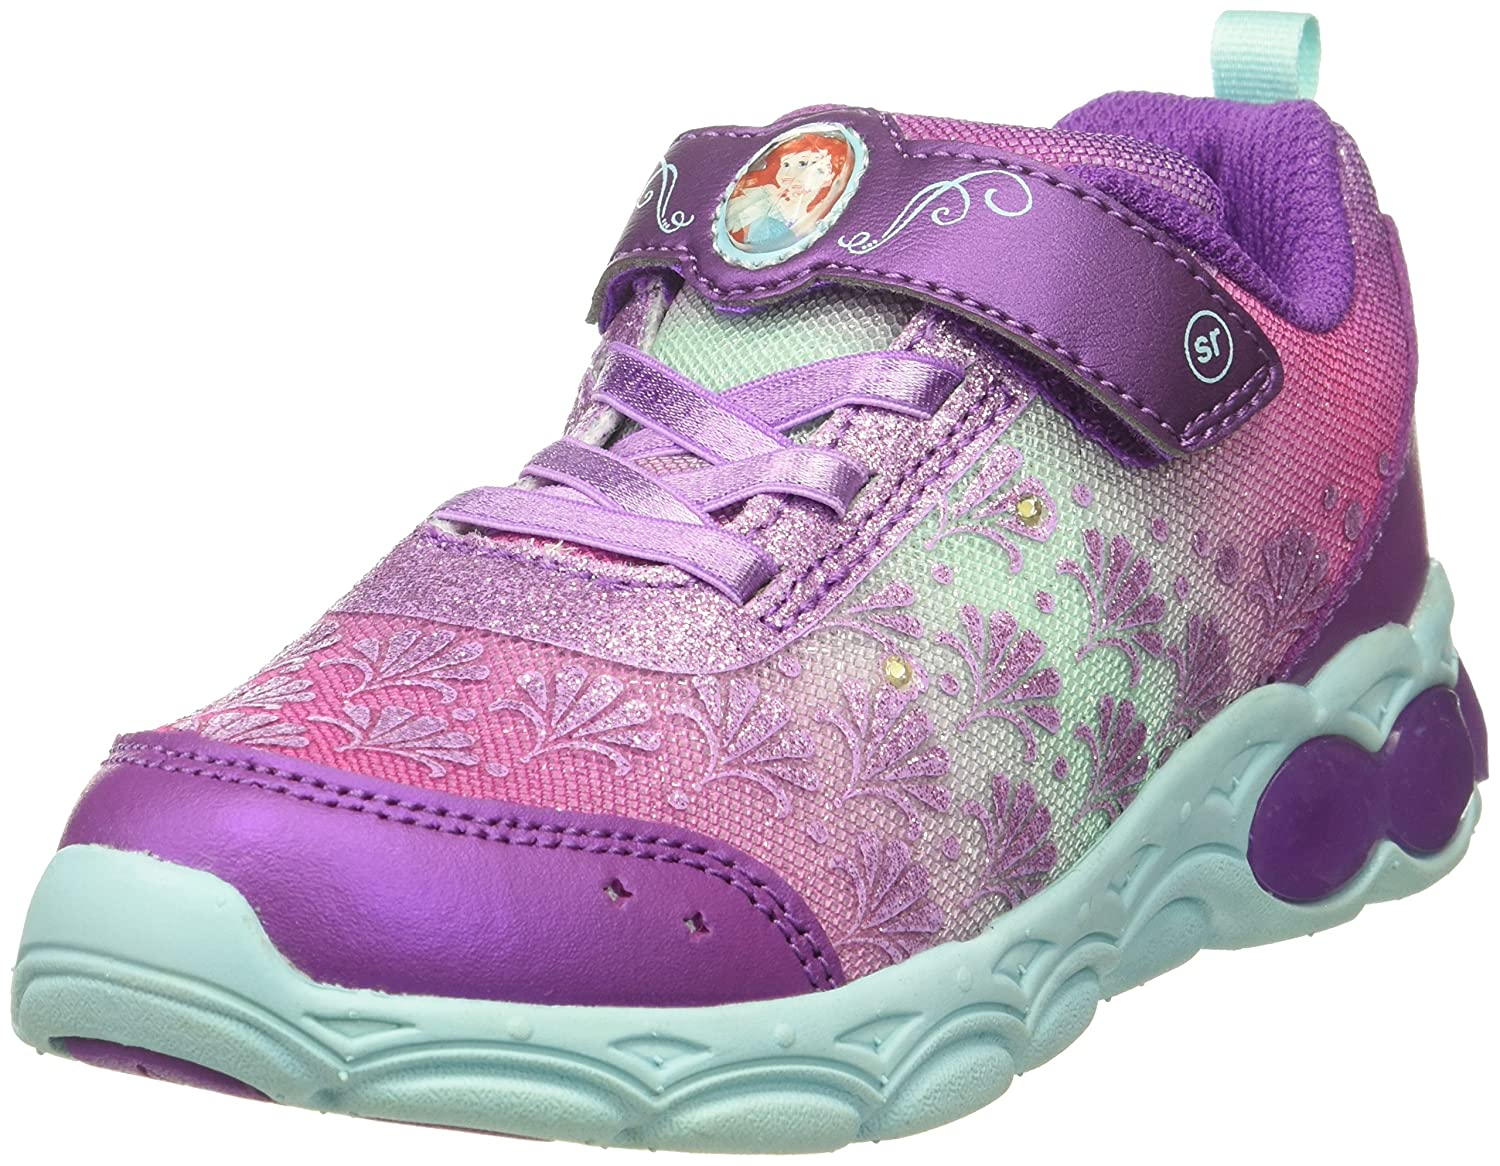 Stride Rite Girl's Disney Ariel Ocean Adventurer Shoes BG56755DY